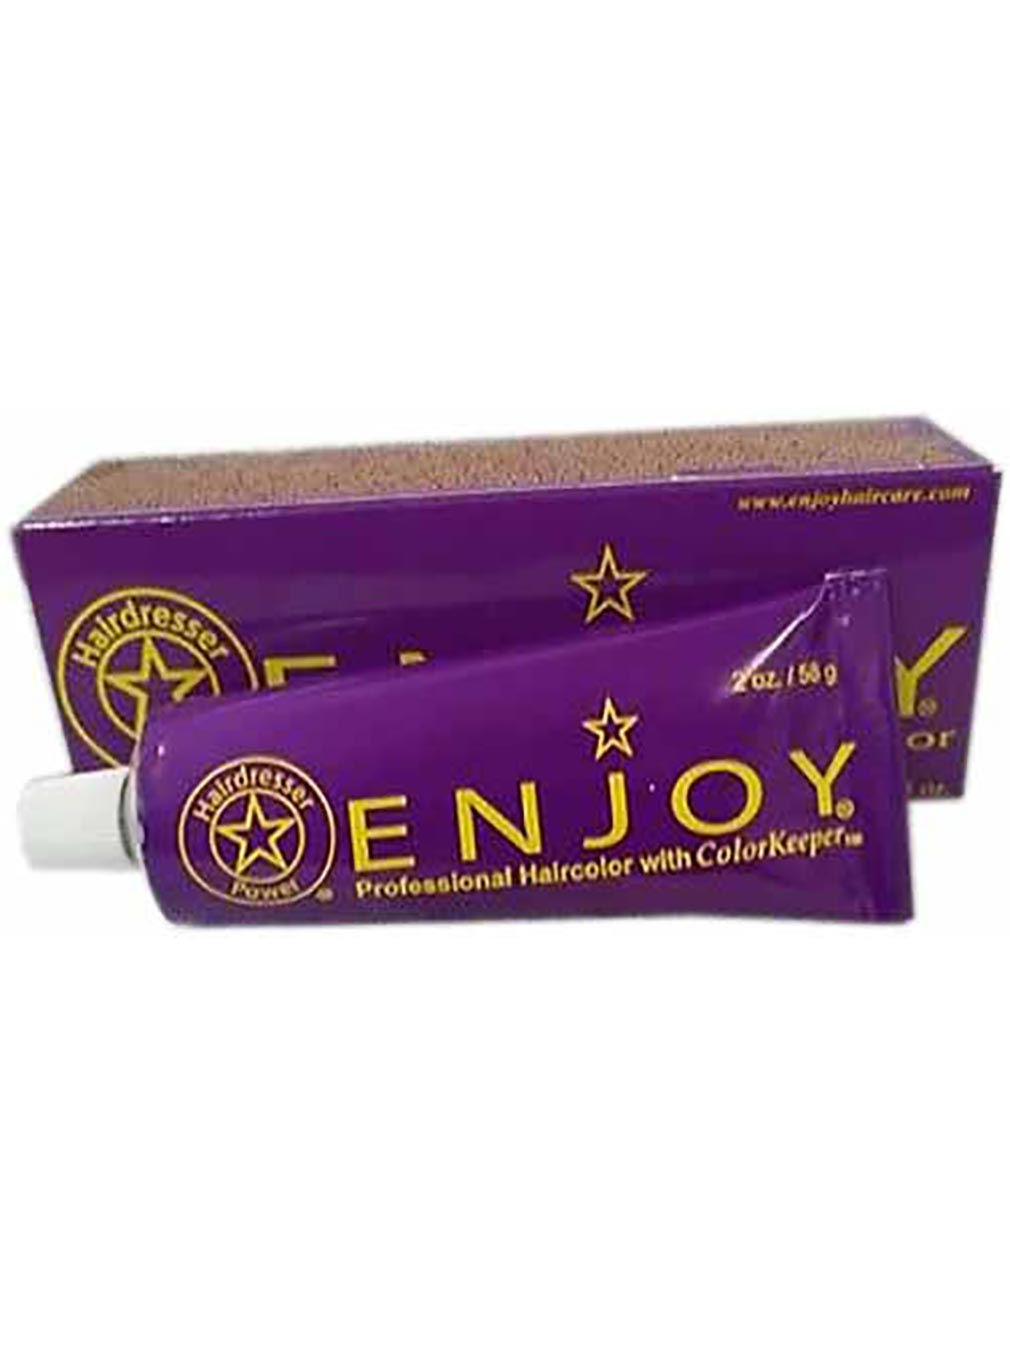 ZZX Enjoy Professional Creme Haircolor Hairdresser Power 2oz (Y)